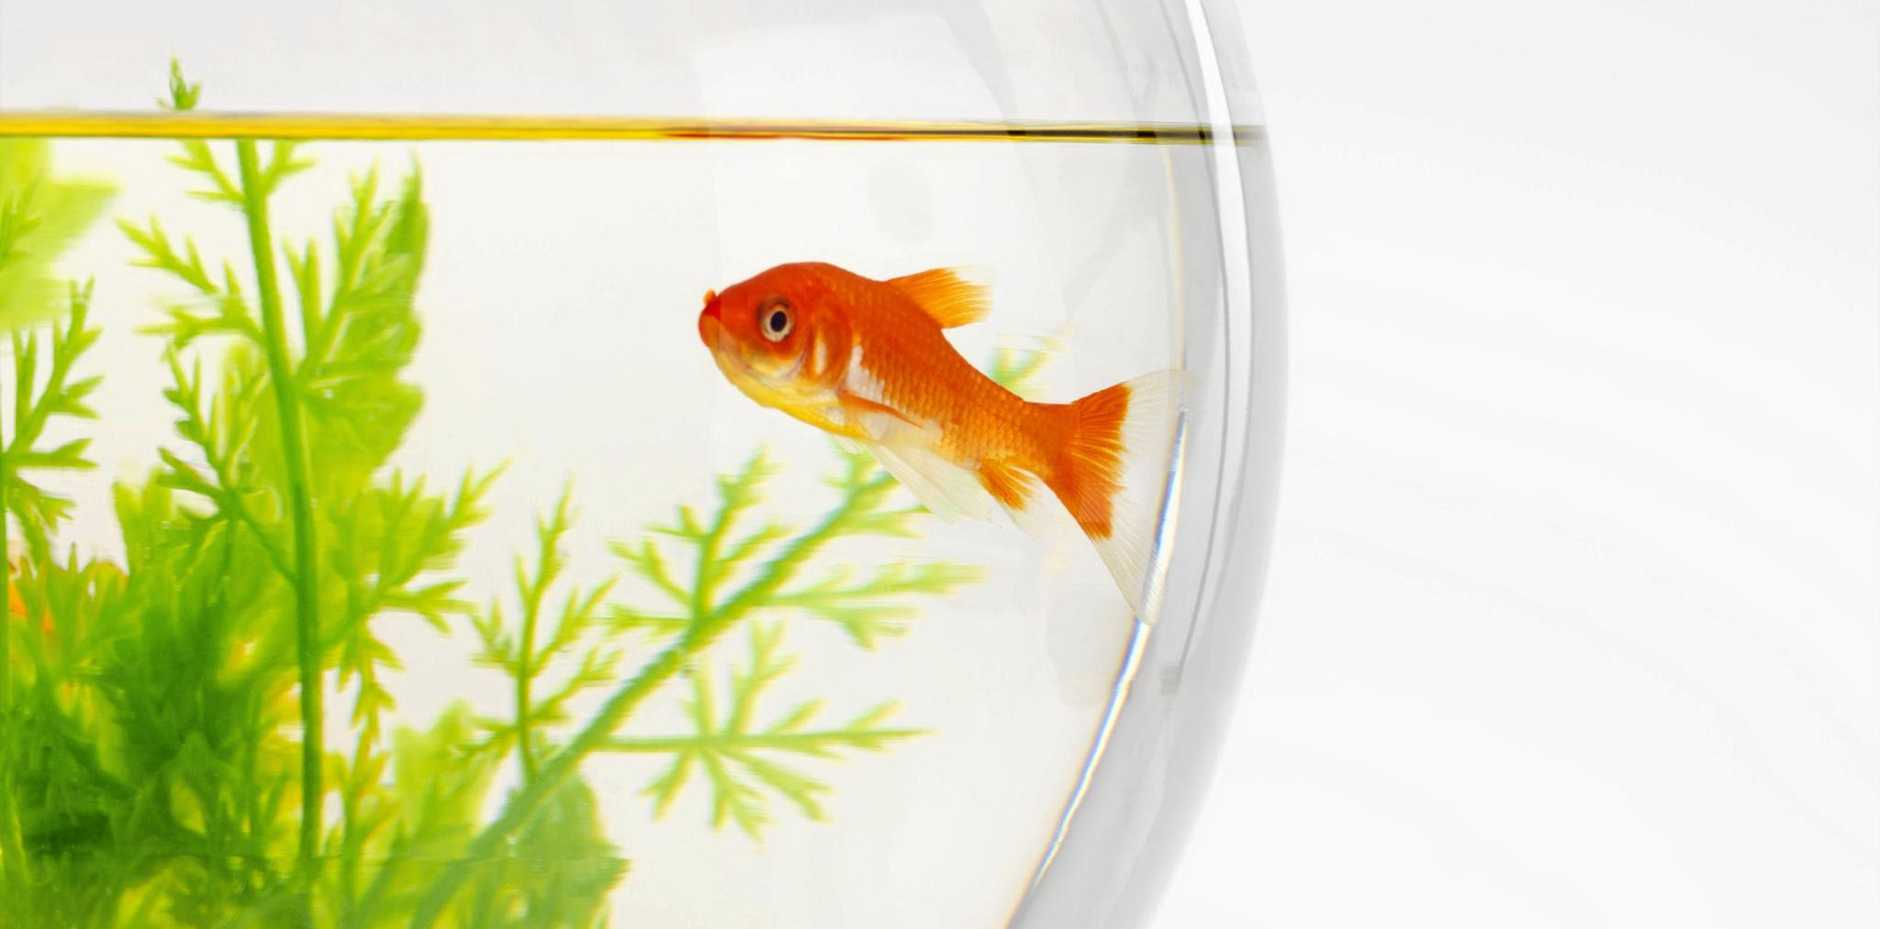 The time spent cleaning a fish bowl sparked the disturbing incident.